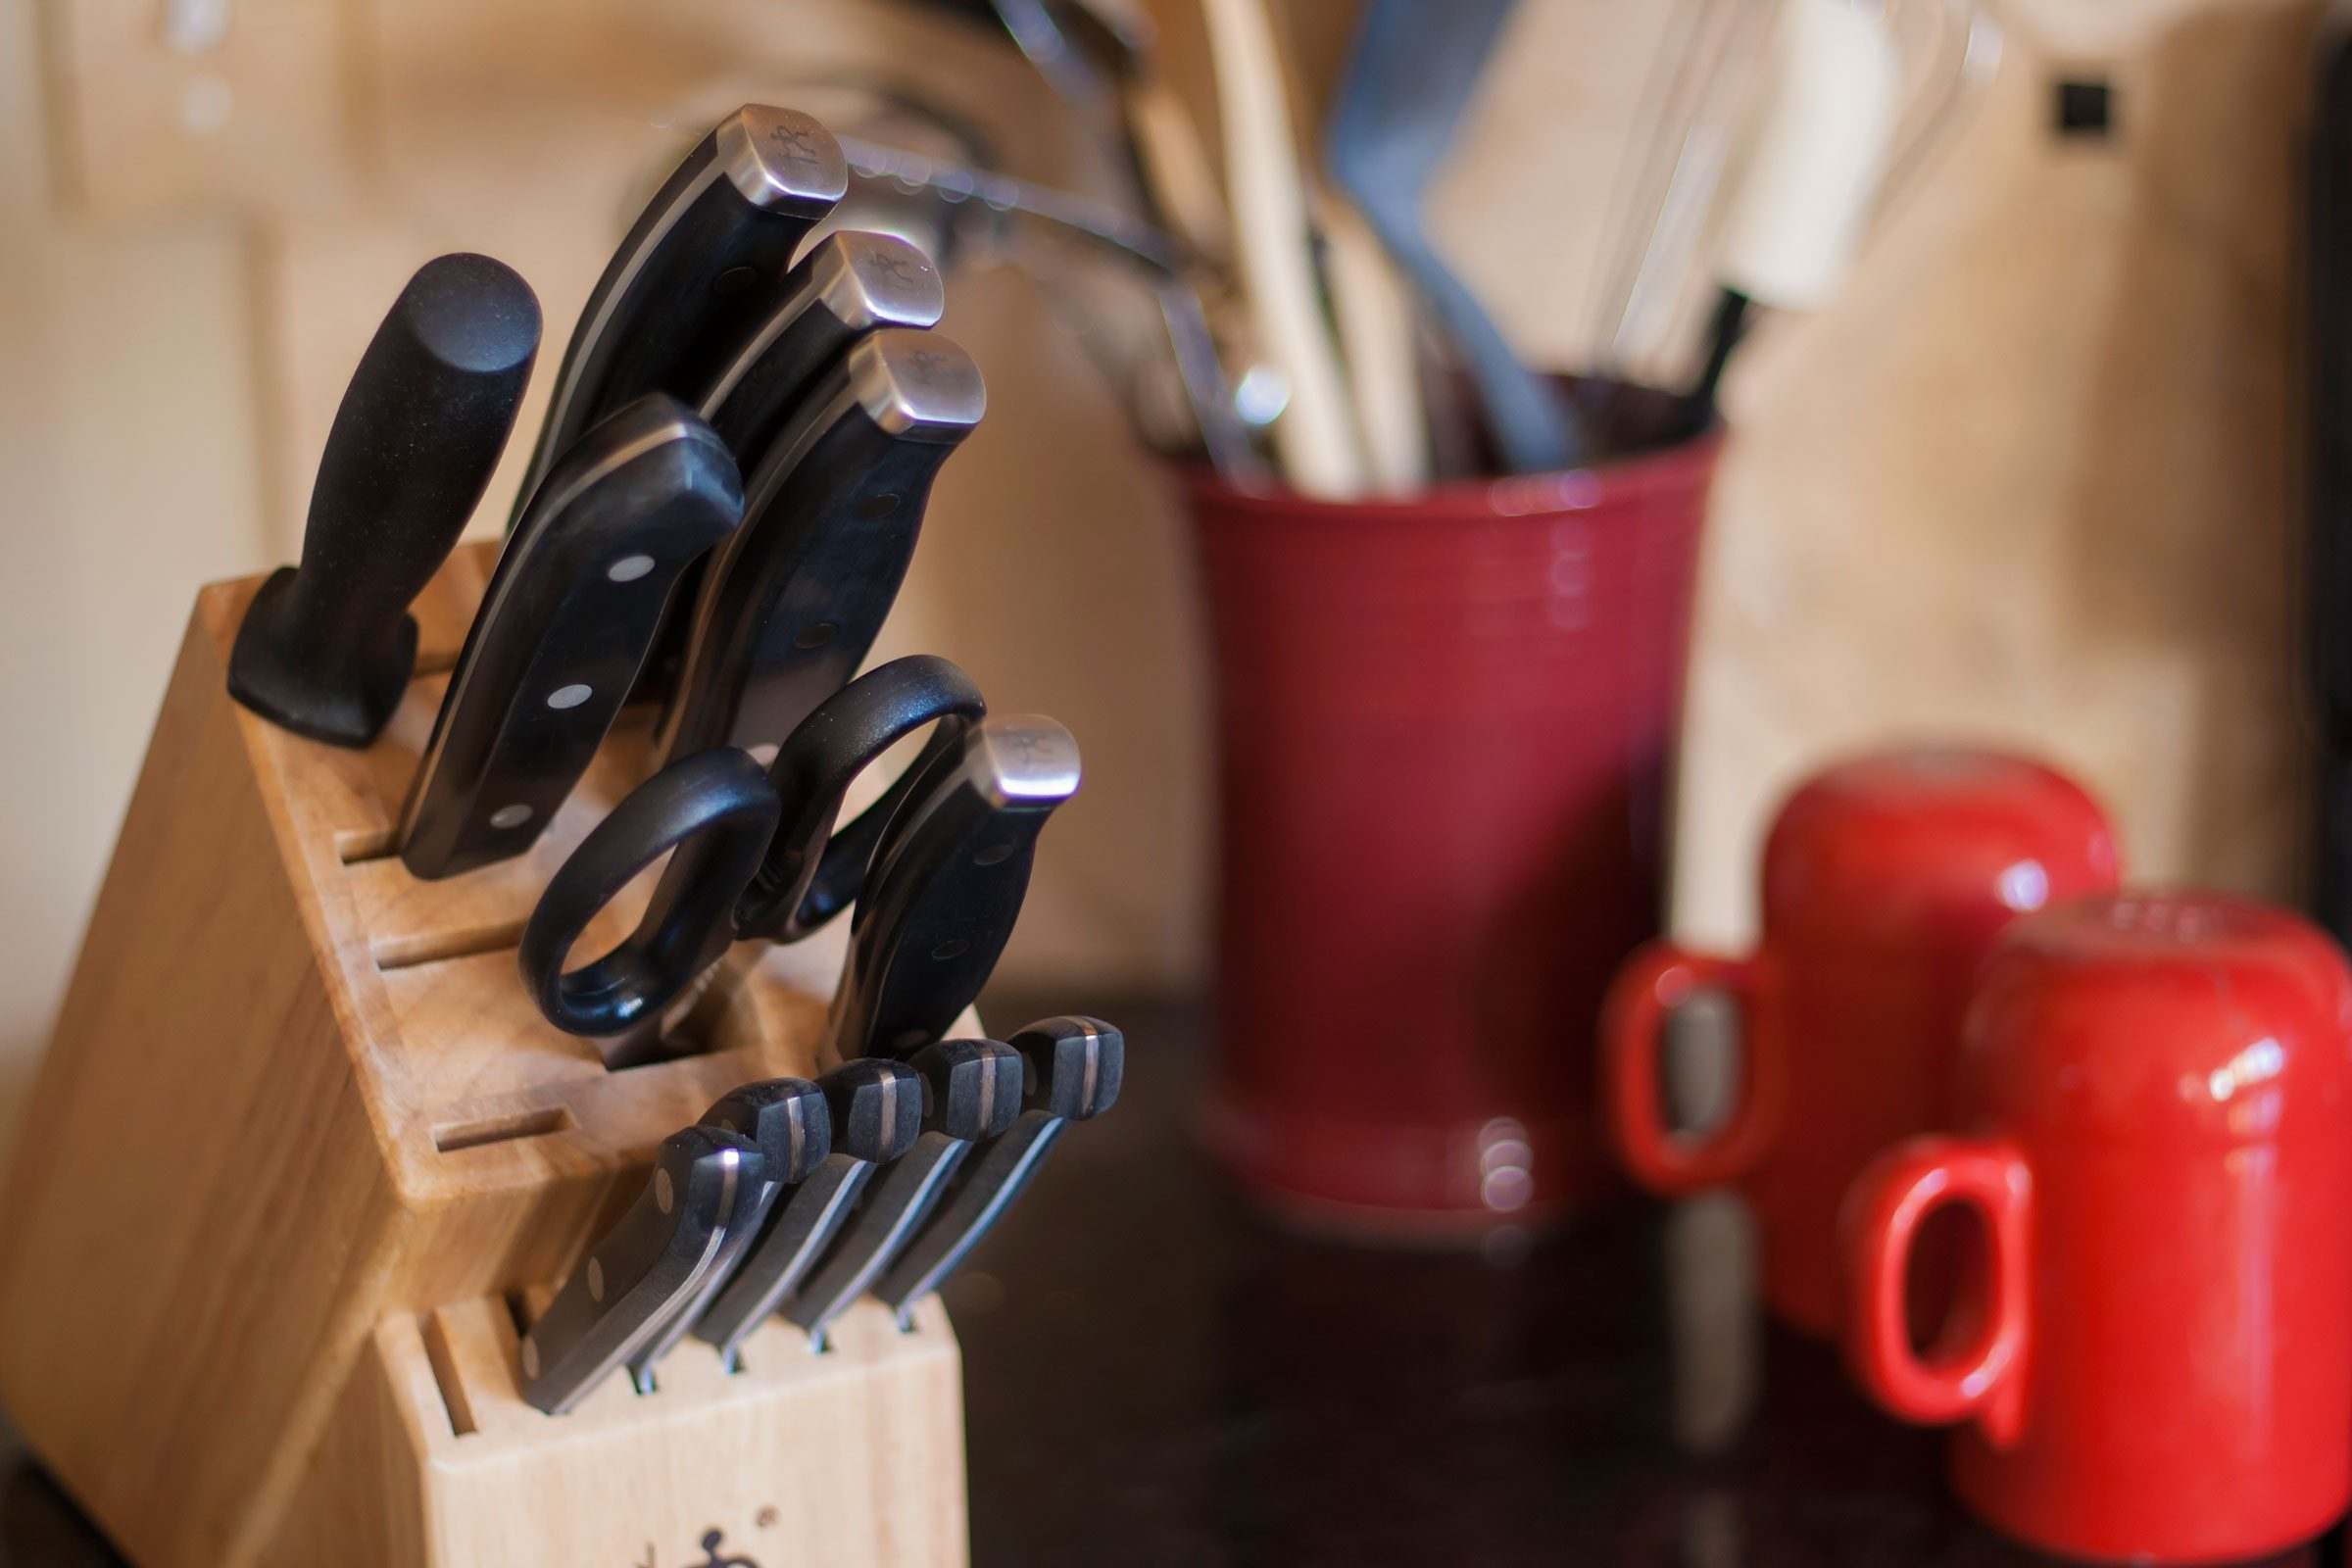 7 Surprisingly Germy Kitchen Items You Never Think To